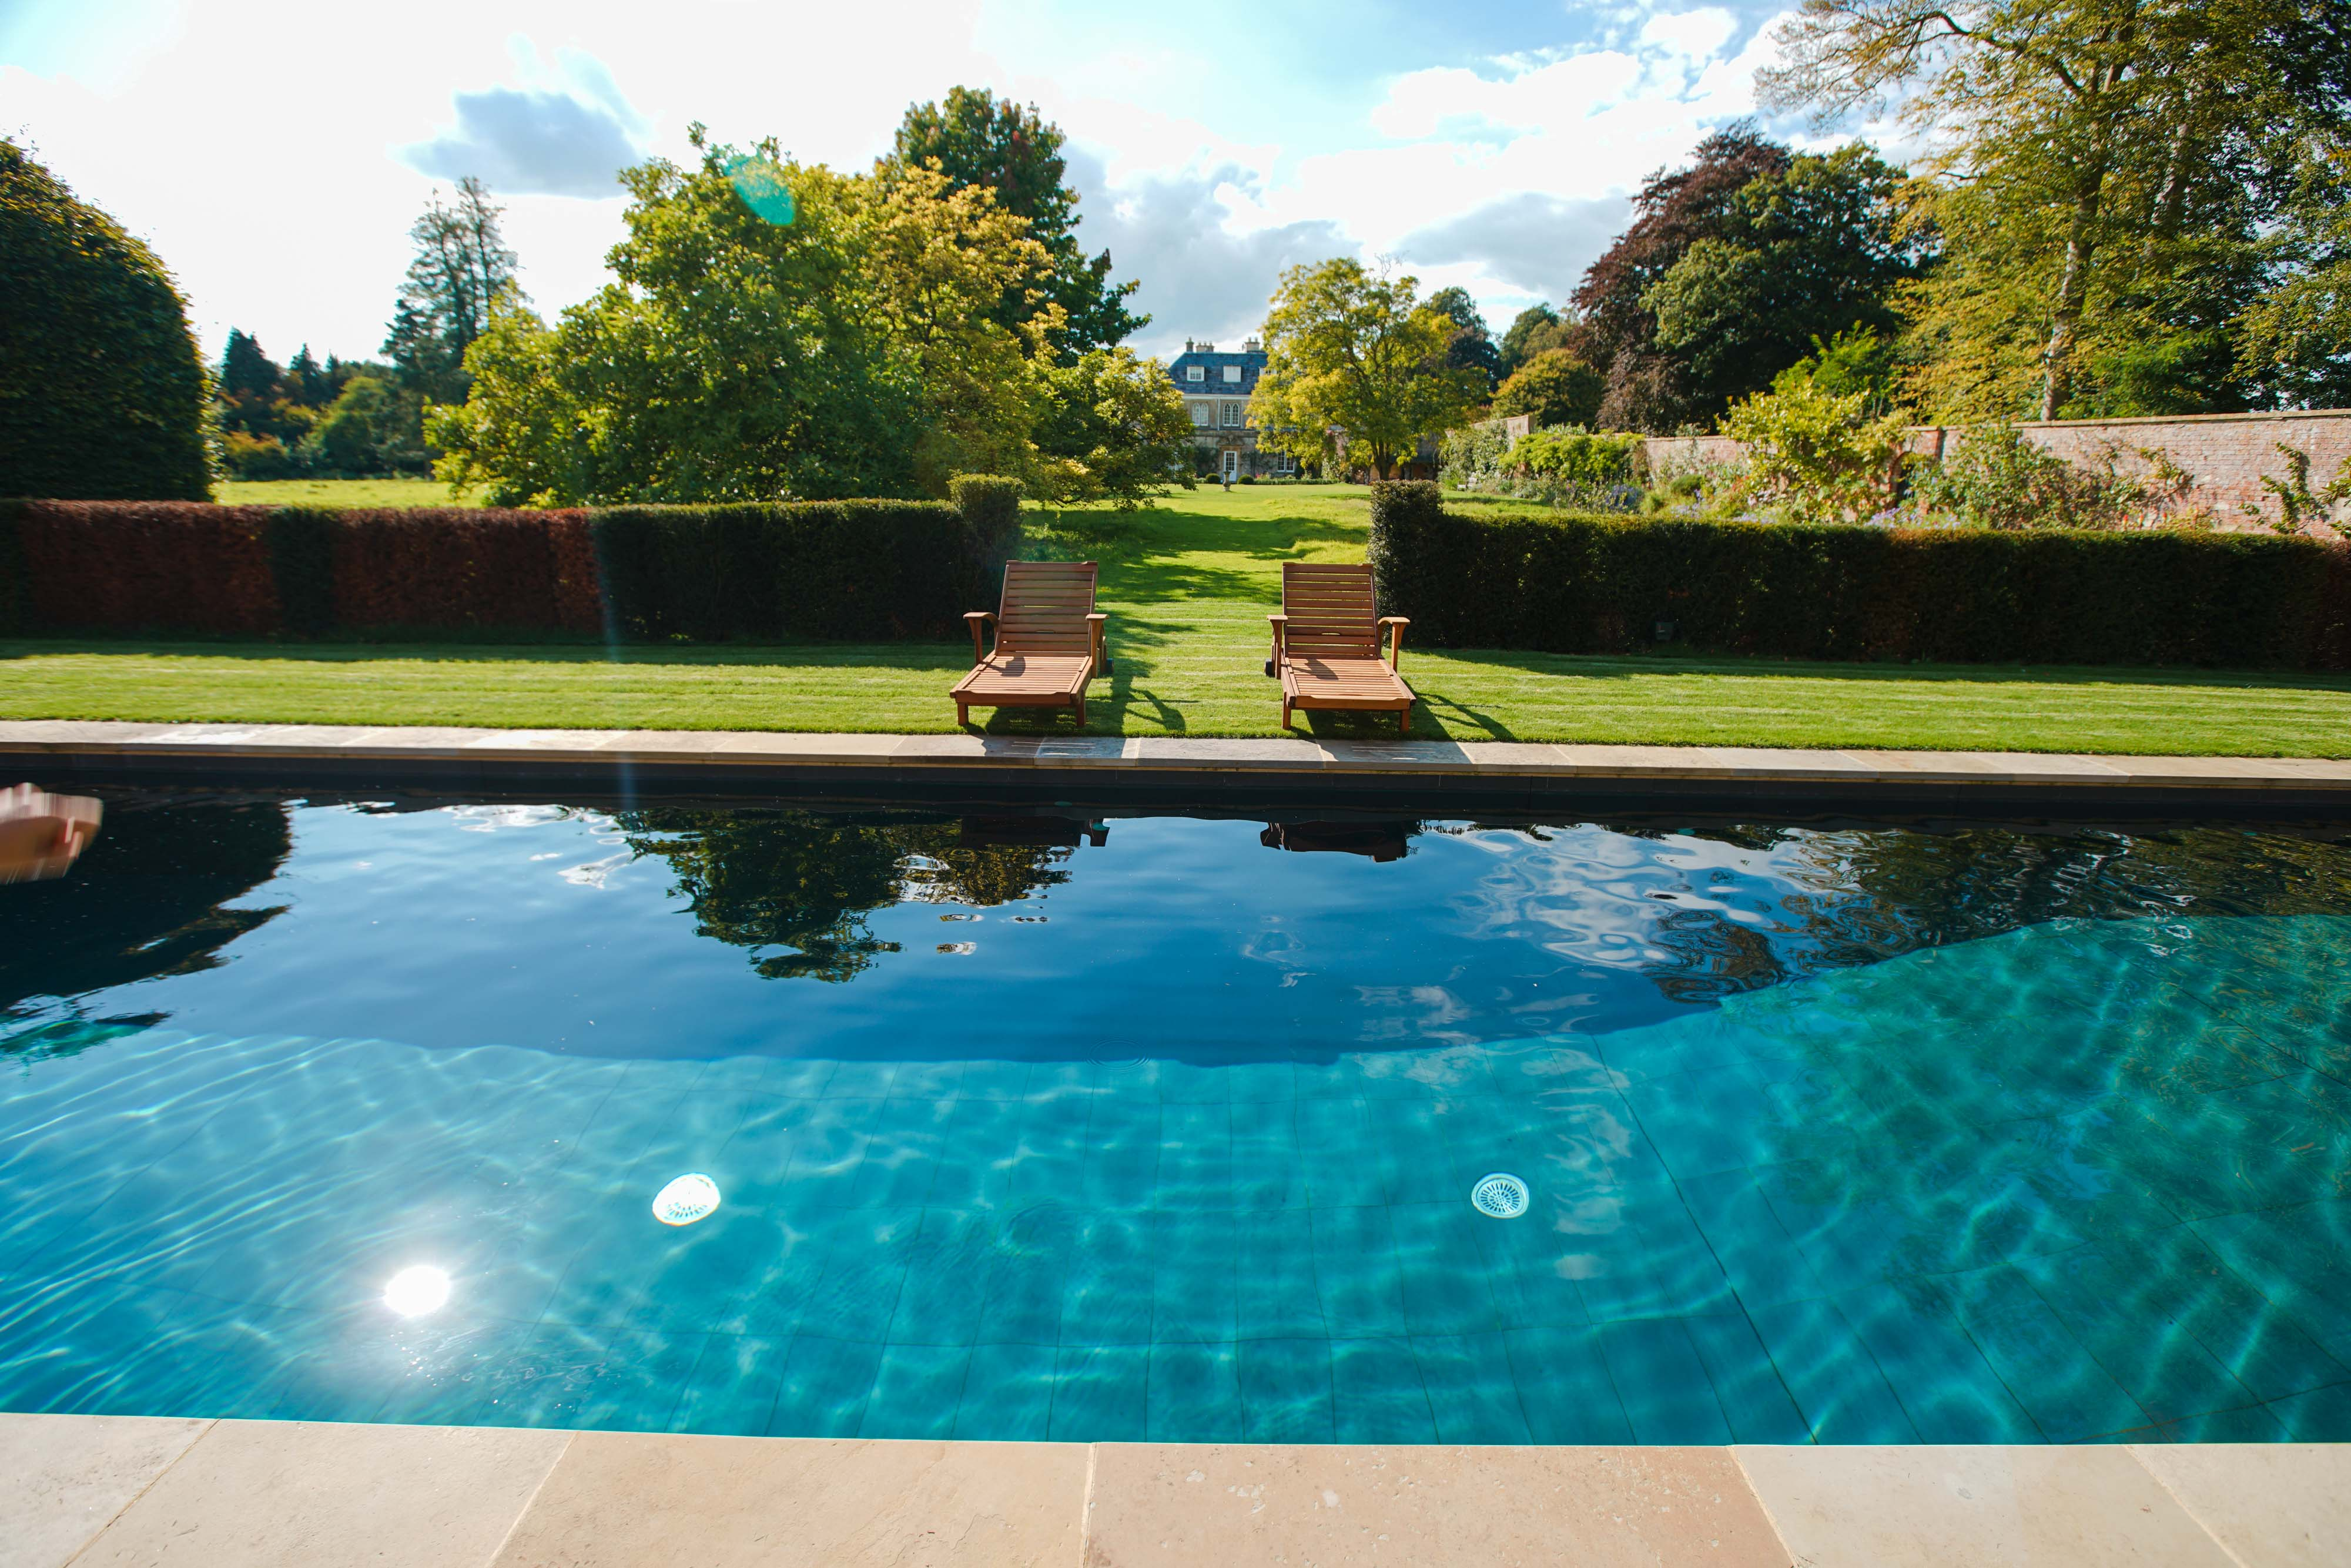 Pool gallery clear water revival - How much water in a swimming pool ...